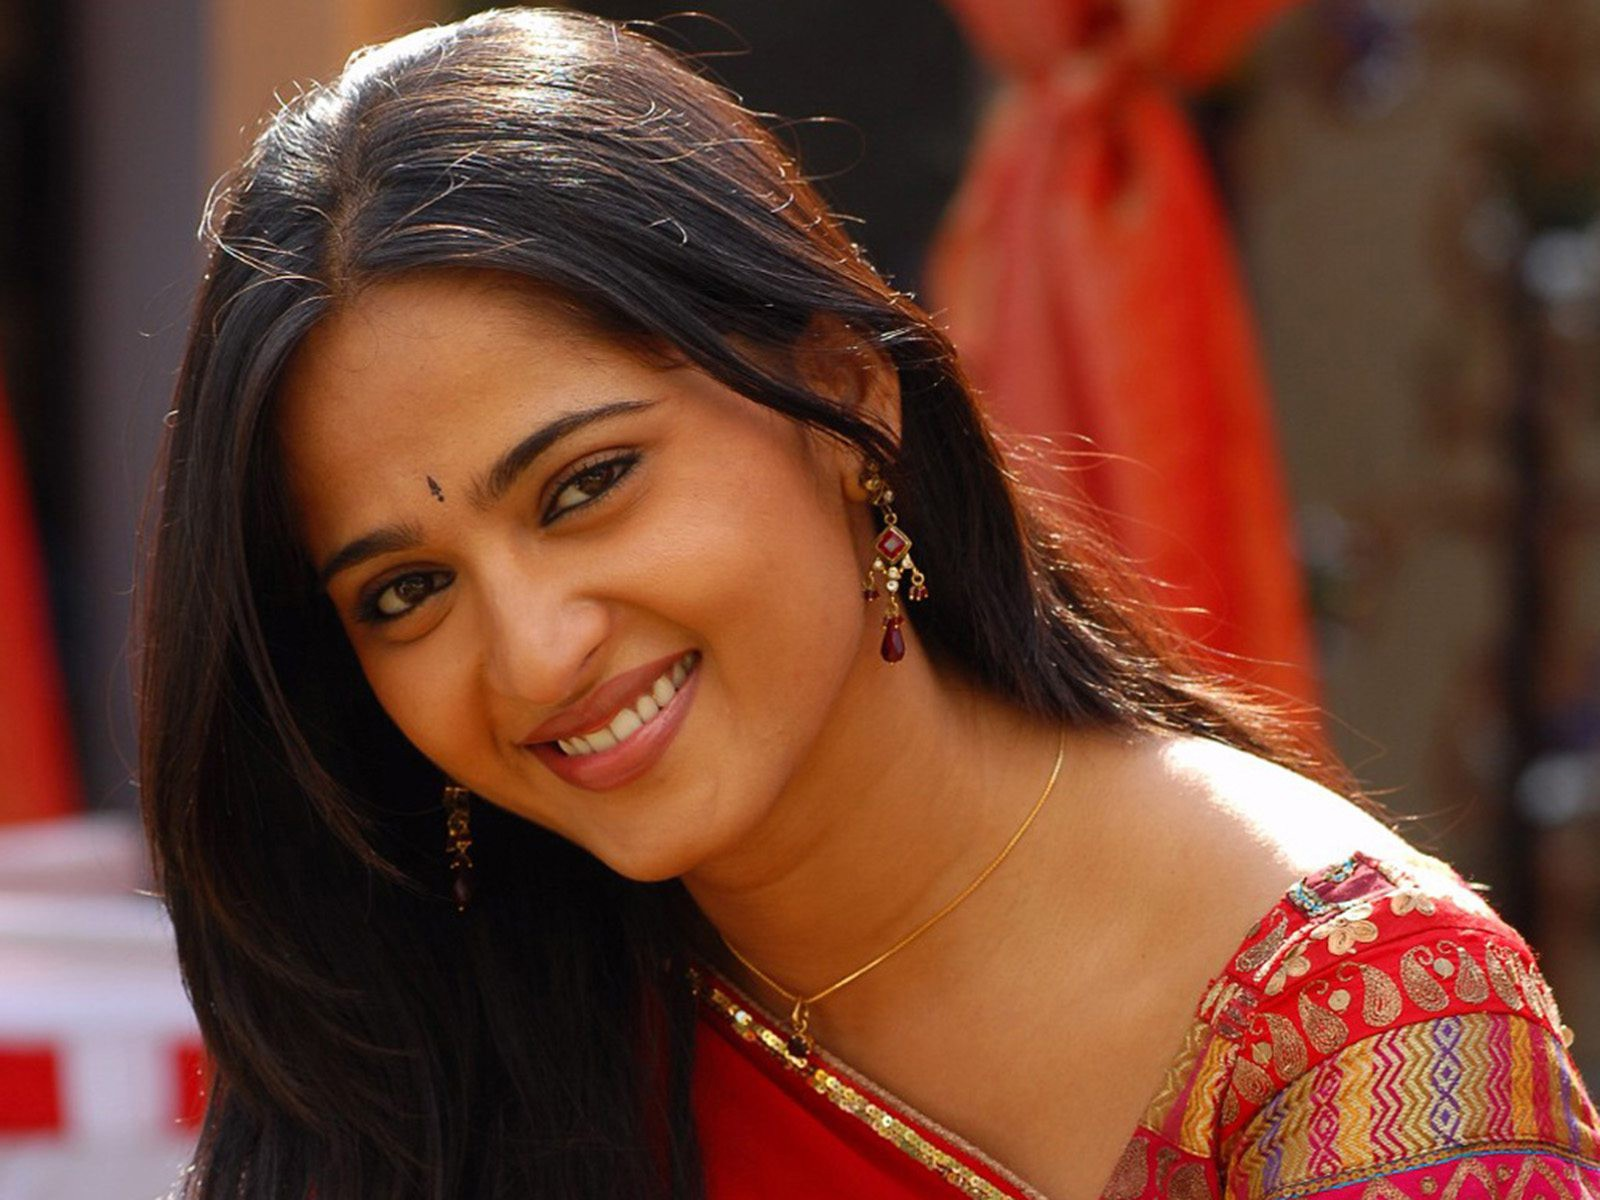 Anushka Shetty in traditional look